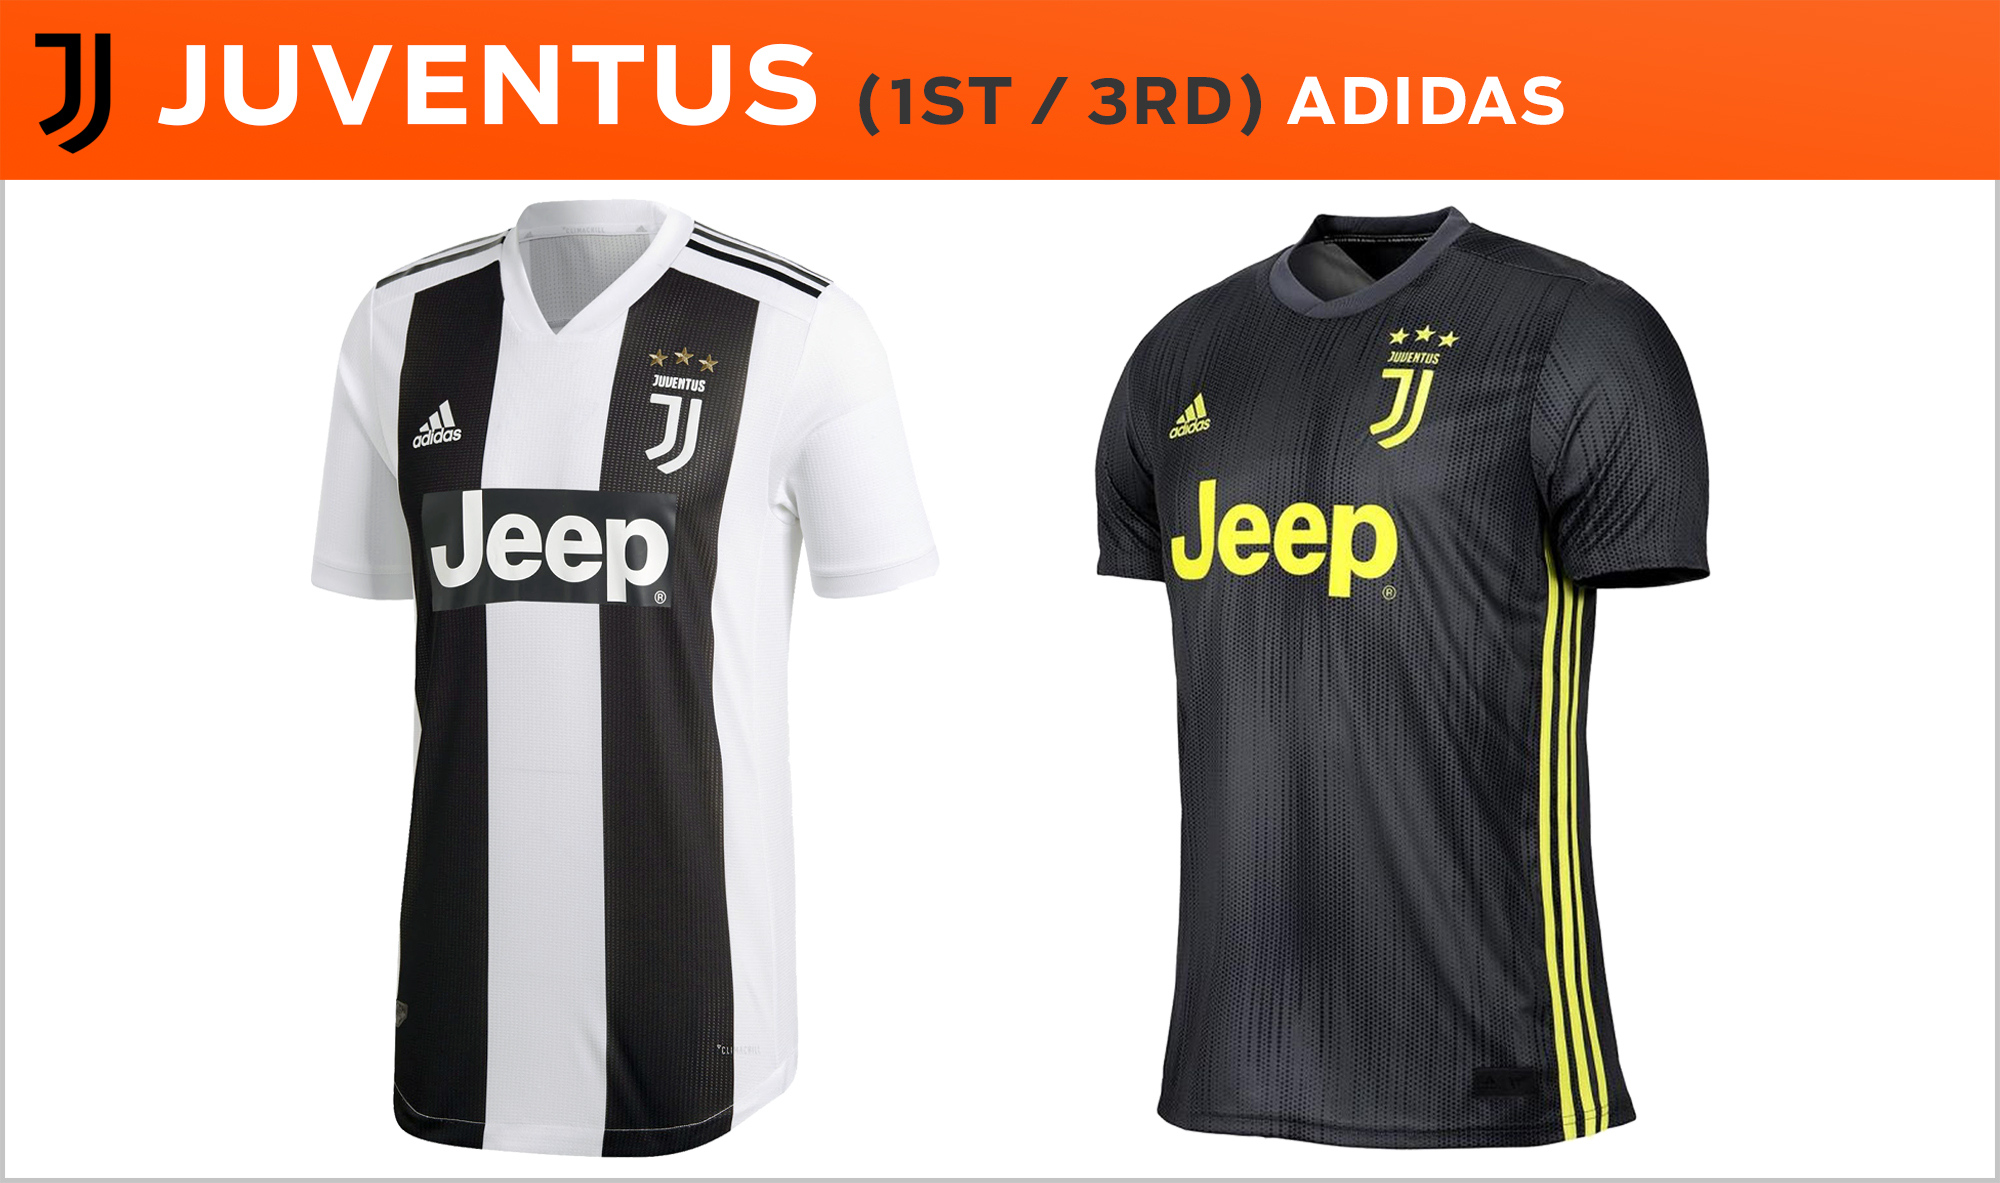 84deee71e45 The most striking aspect of Juventus  new home kit